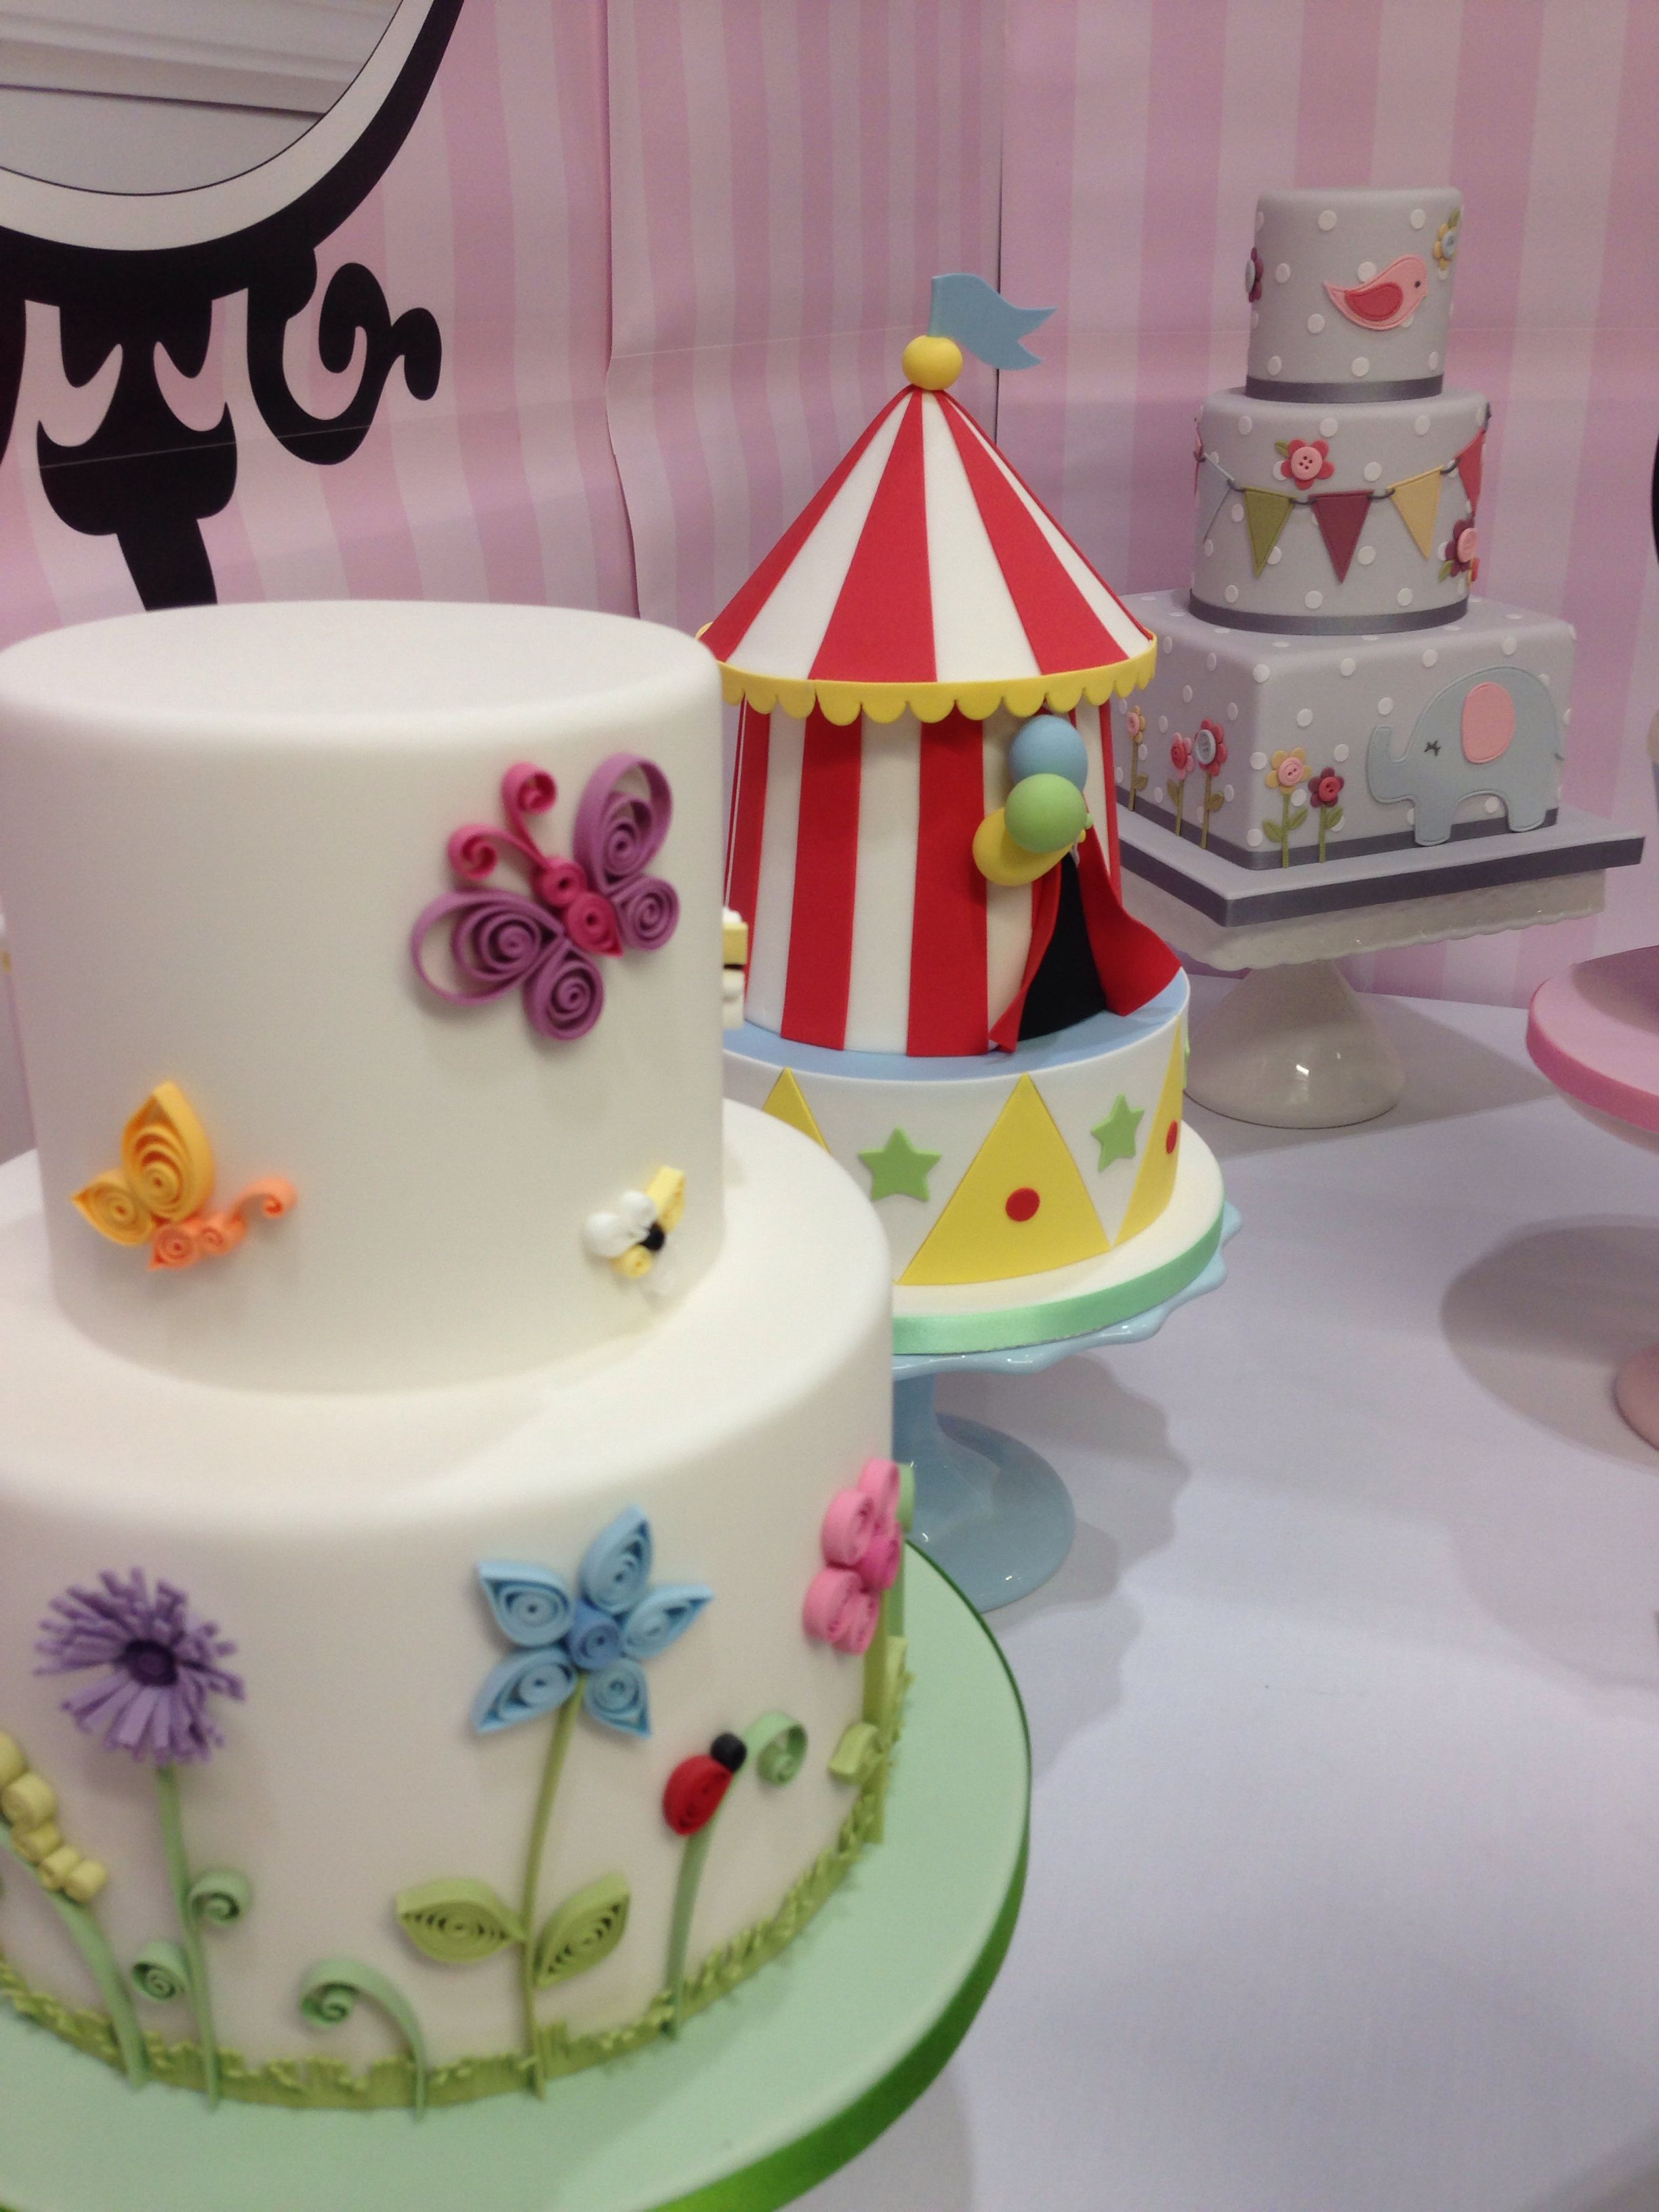 Cake ideas very cute cakes birthday vintage simple for Cute simple cakes